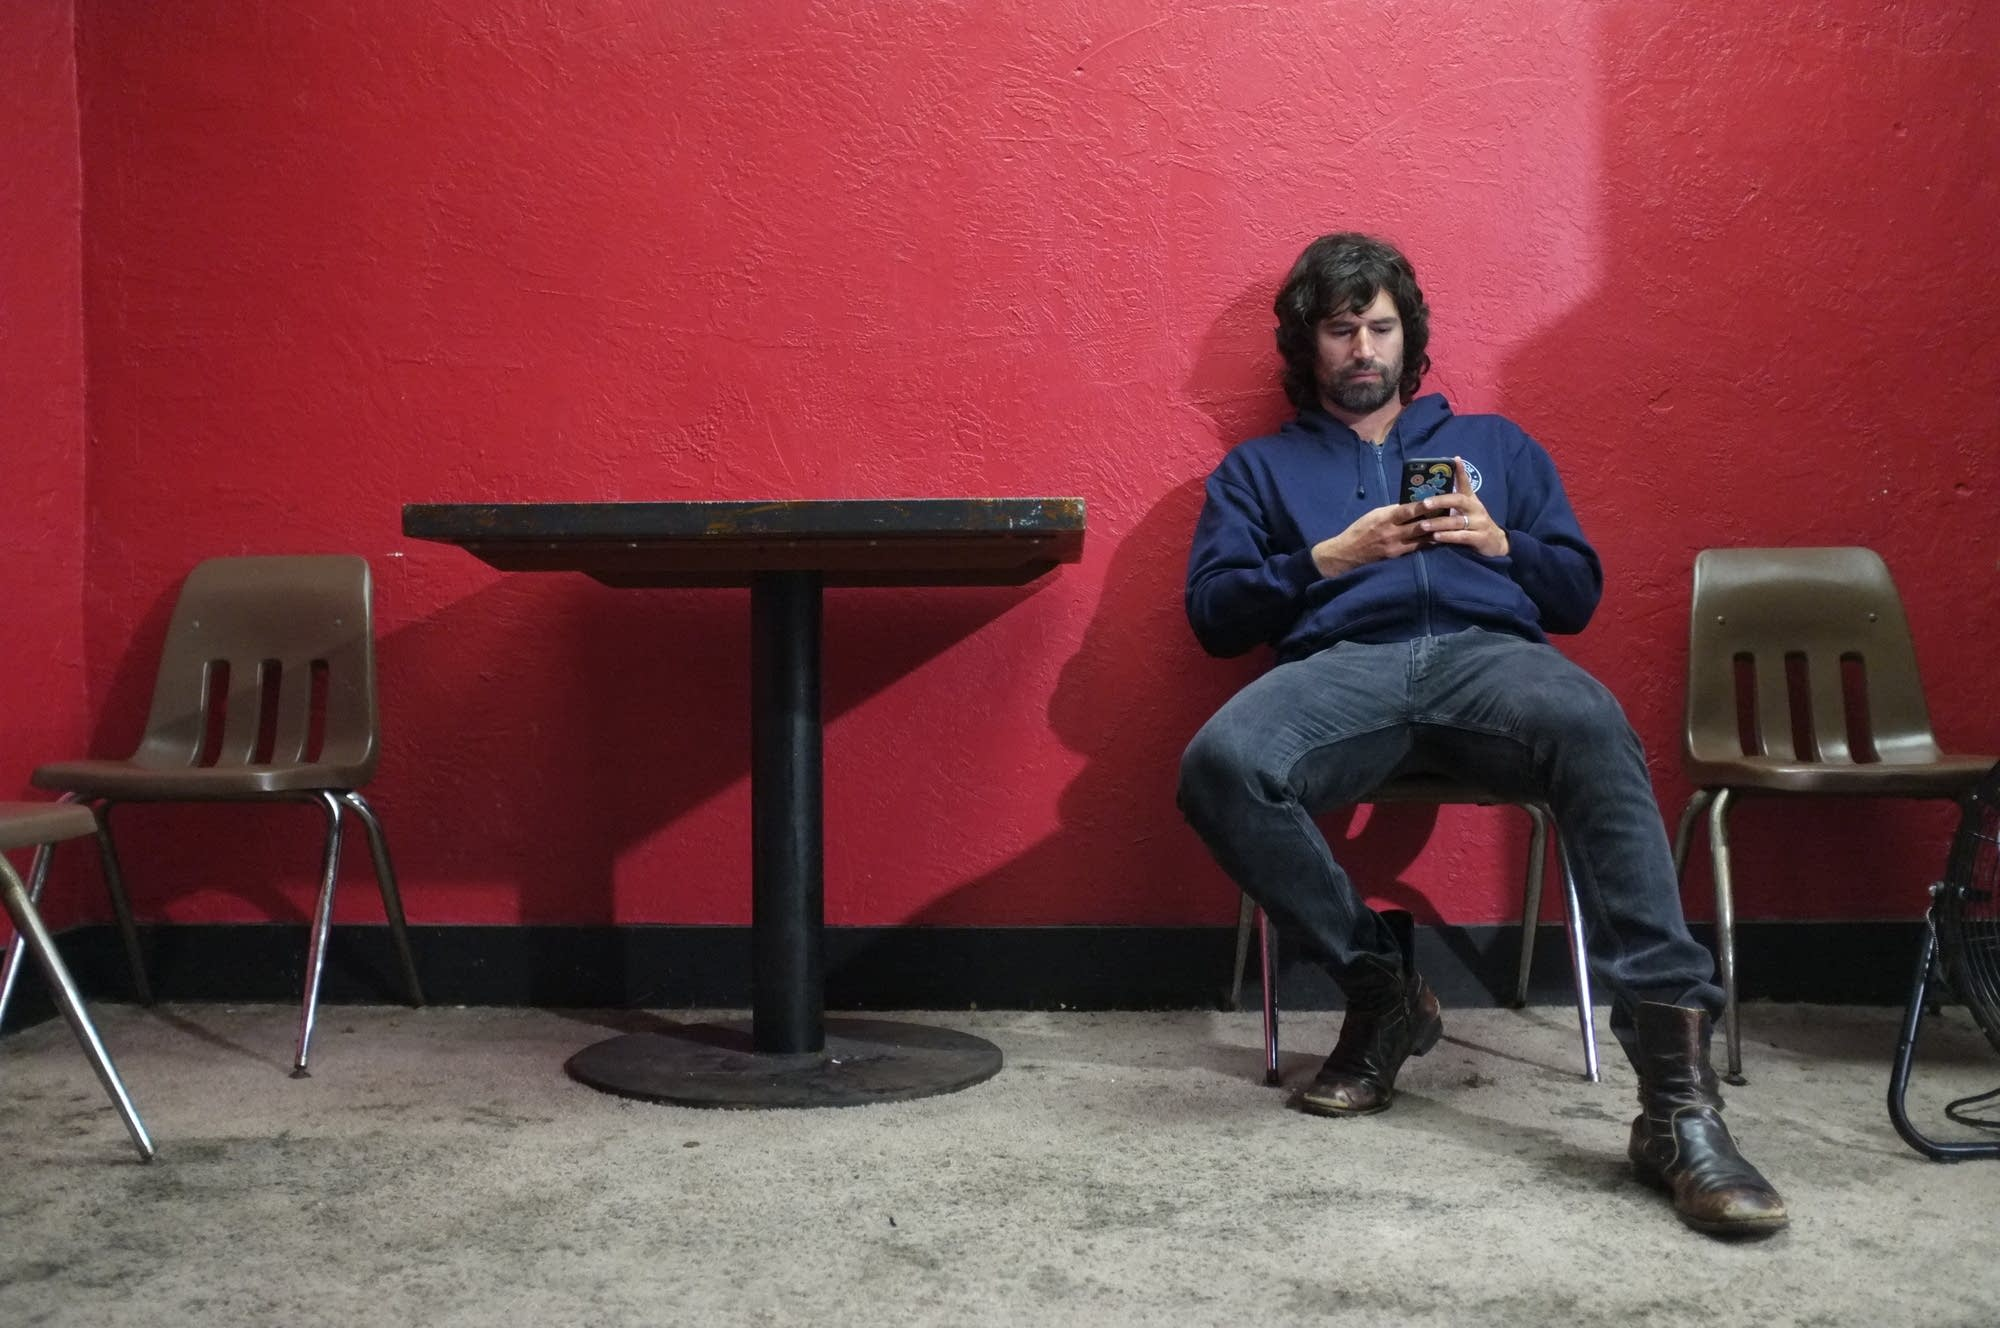 Singer-songwriter Pete Yorn